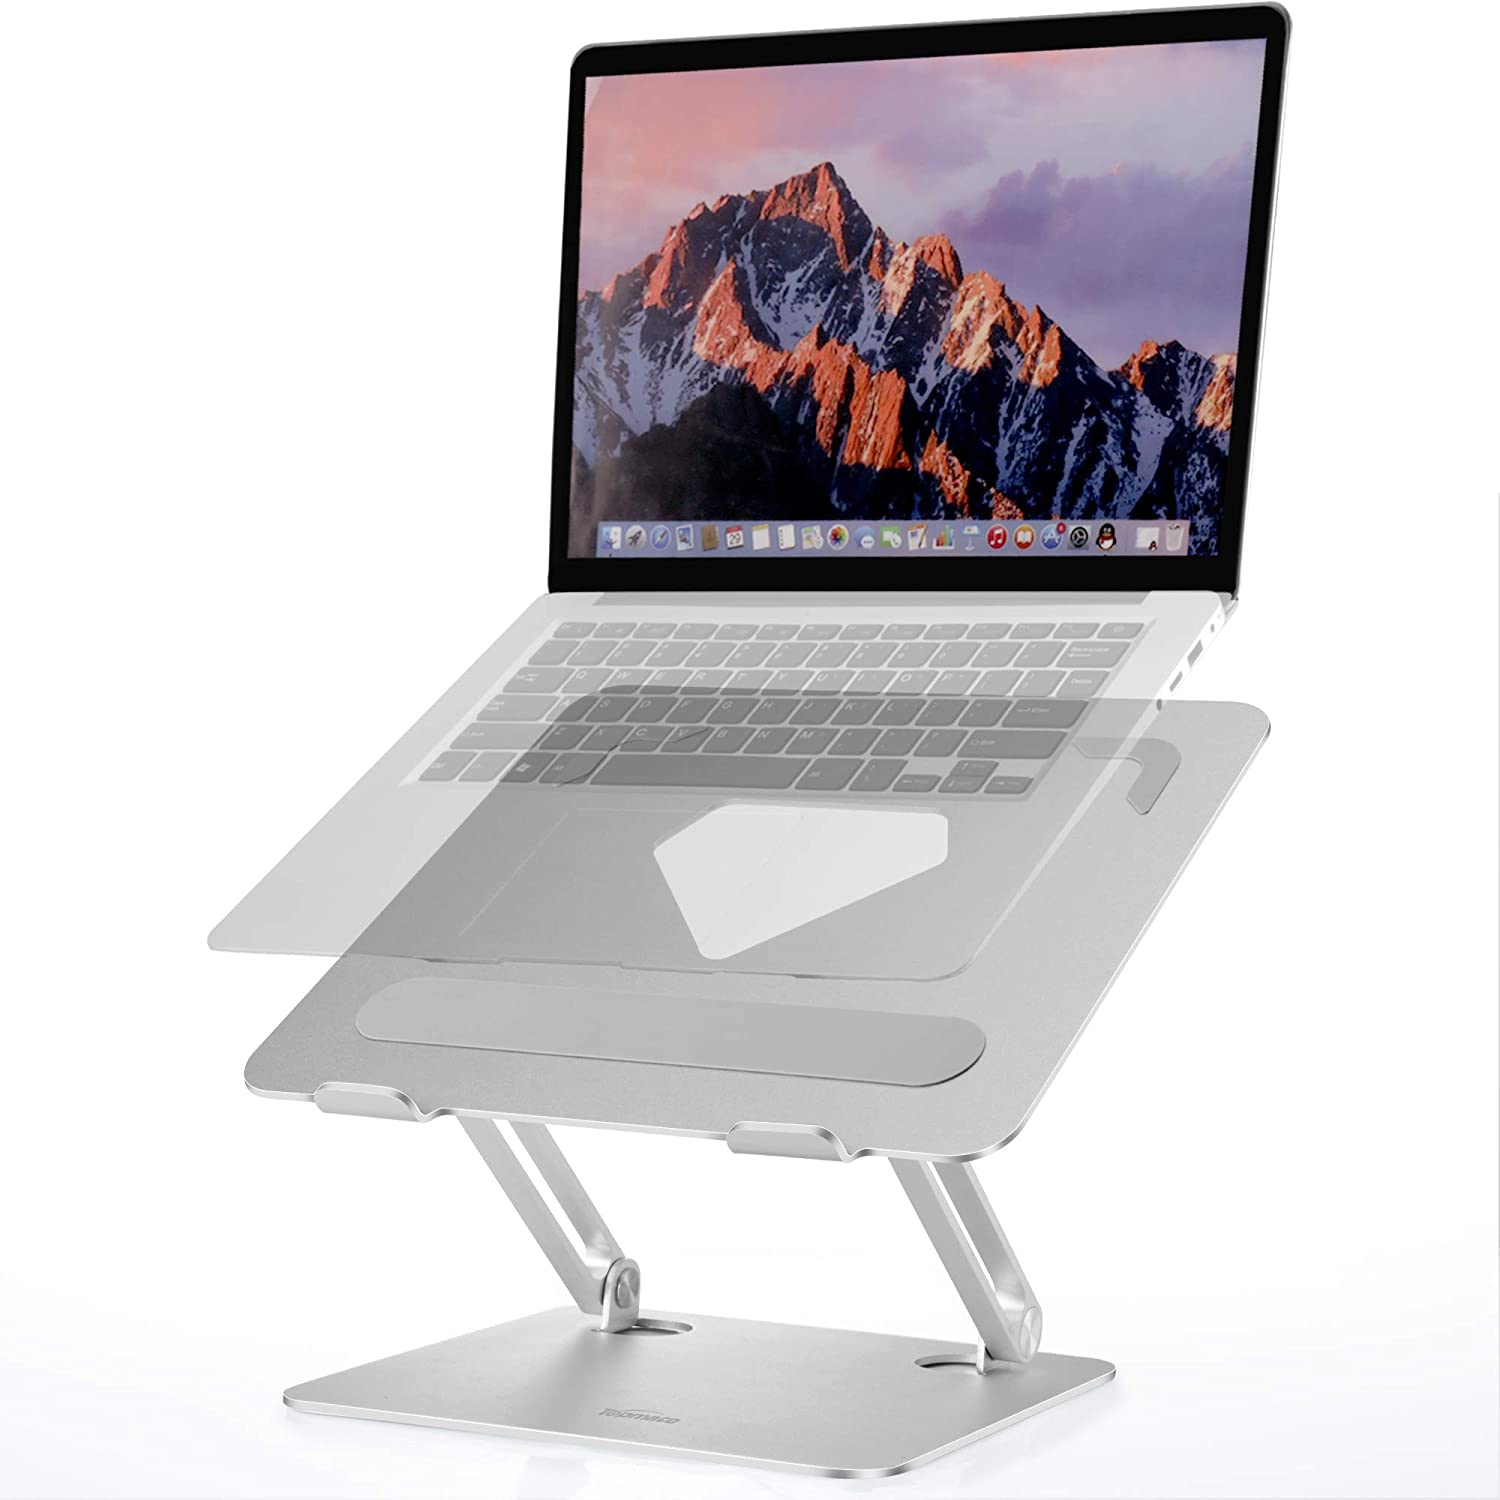 Laptop Stand Ergonomics TopMate Adjustable Laptop Riser, Aluminum Notebook Holder Stand Compatible with 10-17.3 inch Mac, MacBook, HP, Dell, Acer, Lenovo Laptops-Silver